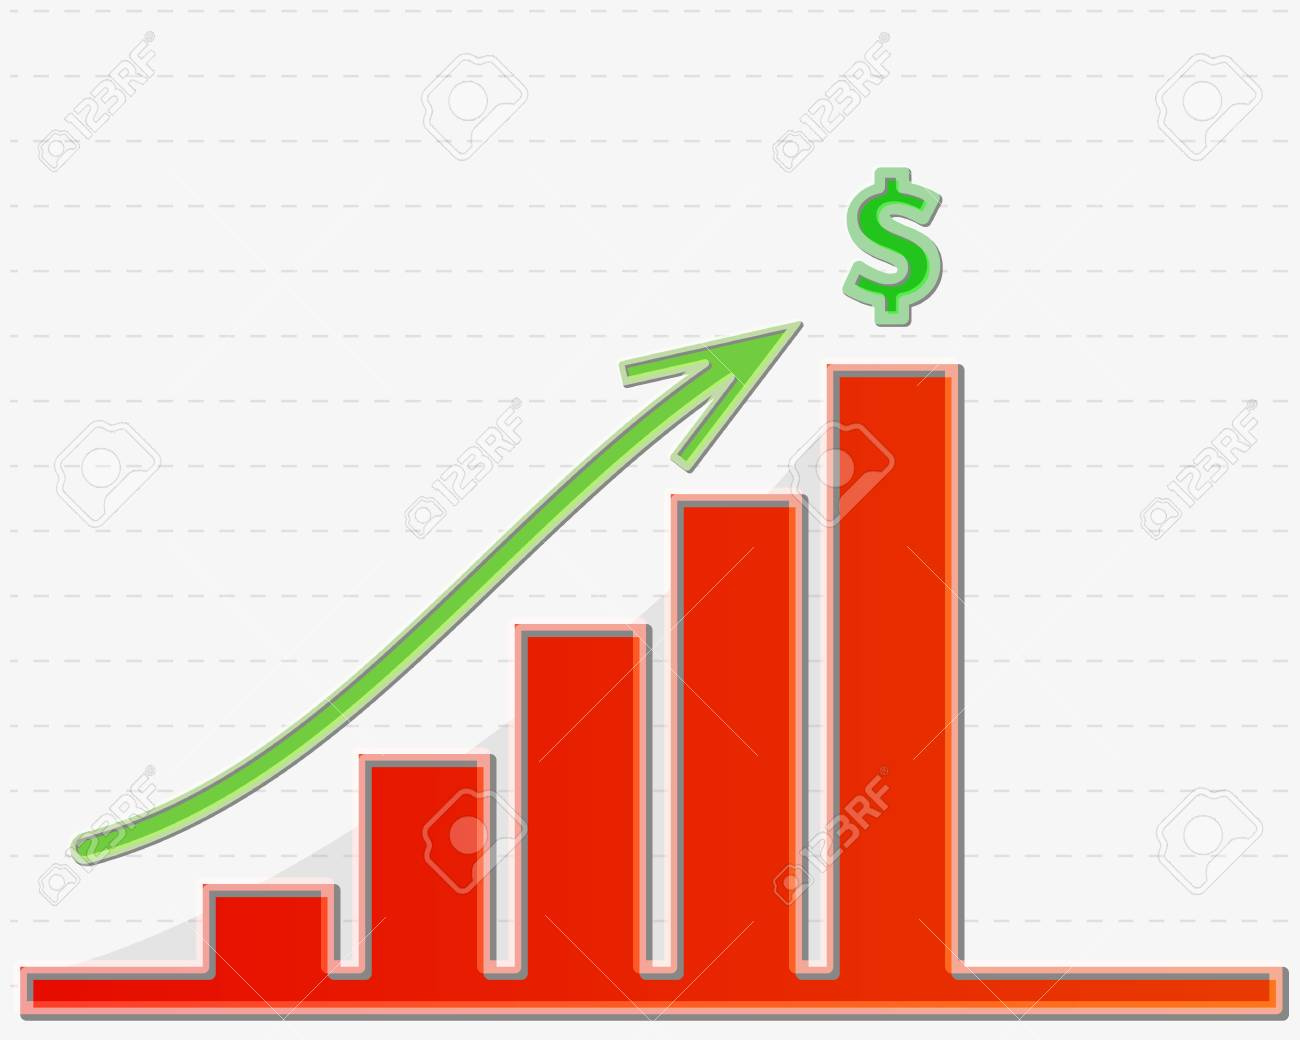 Red Lined Graph Growing To The Highest Line With Symbol For Money